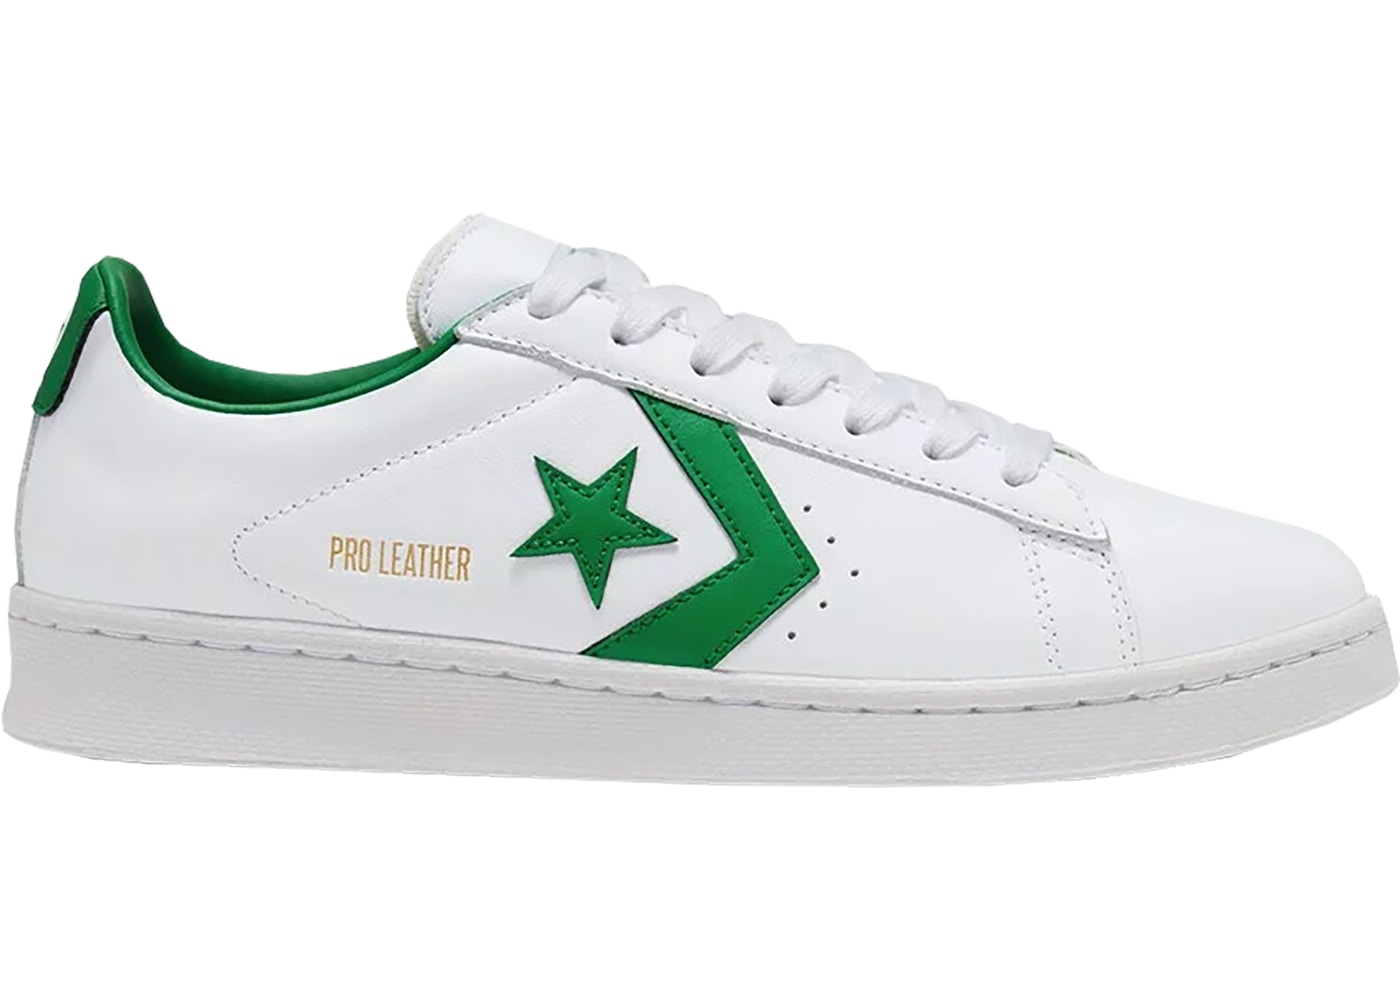 Converse Pro Leather Ox White Green - 167971C